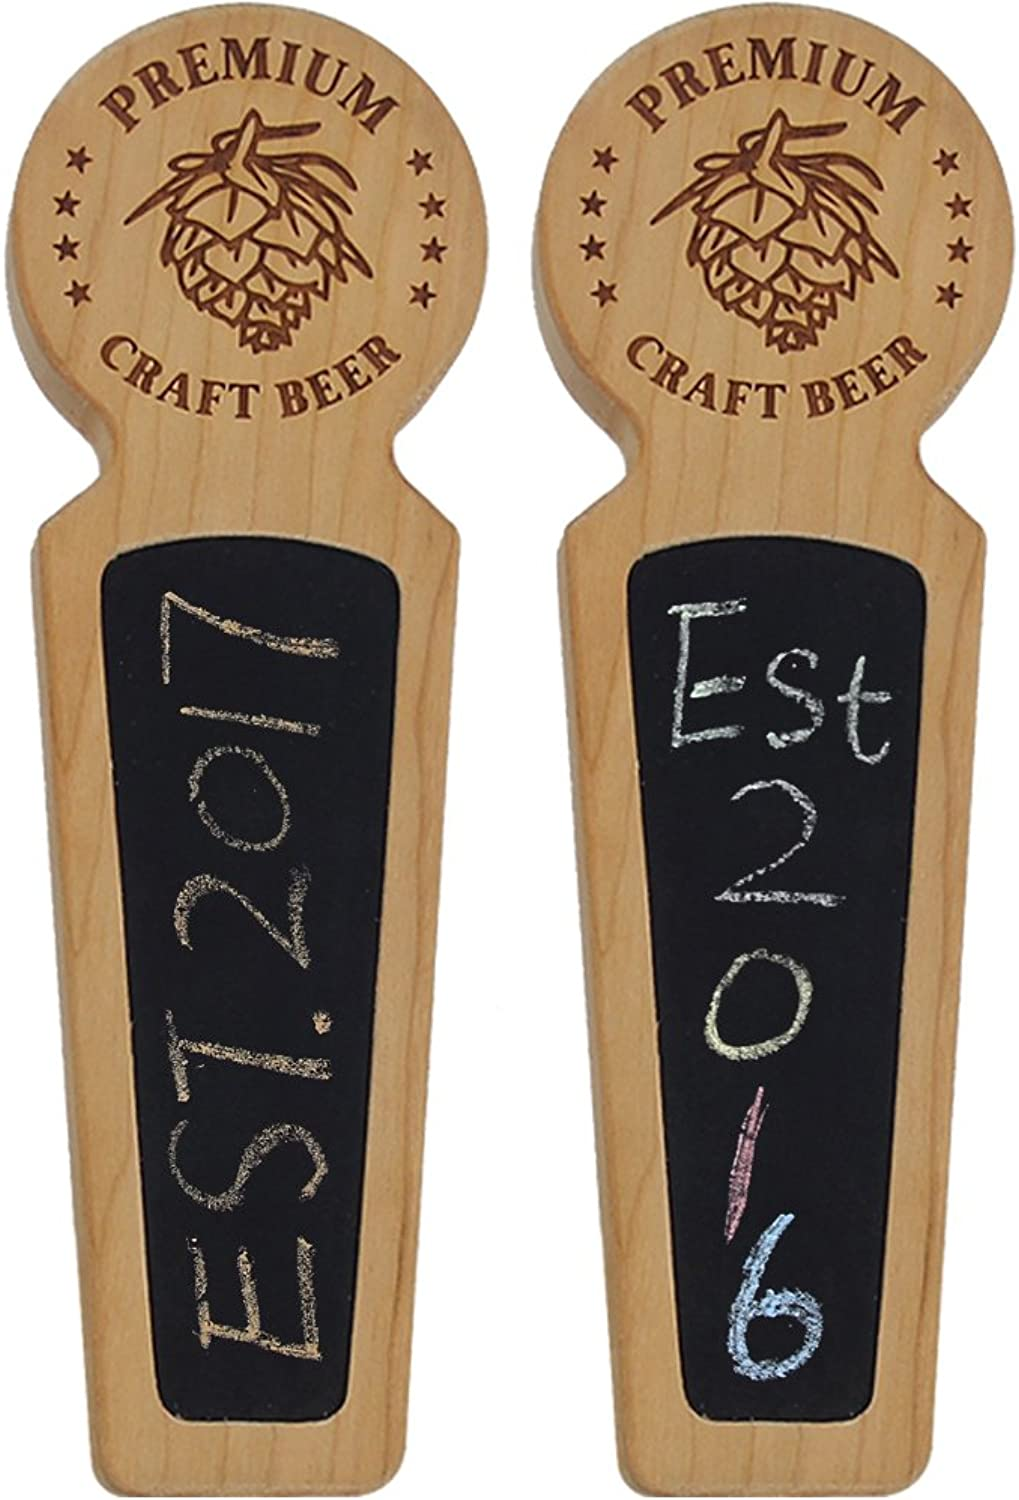 Fanfoobi Set of 2 Wooden Beer tap handle with chalkboard Premium Craft Beer, Made of Cherry, Round Top 8.3 INCH Long, Perfect for Homebrew, Kegerators or Bars